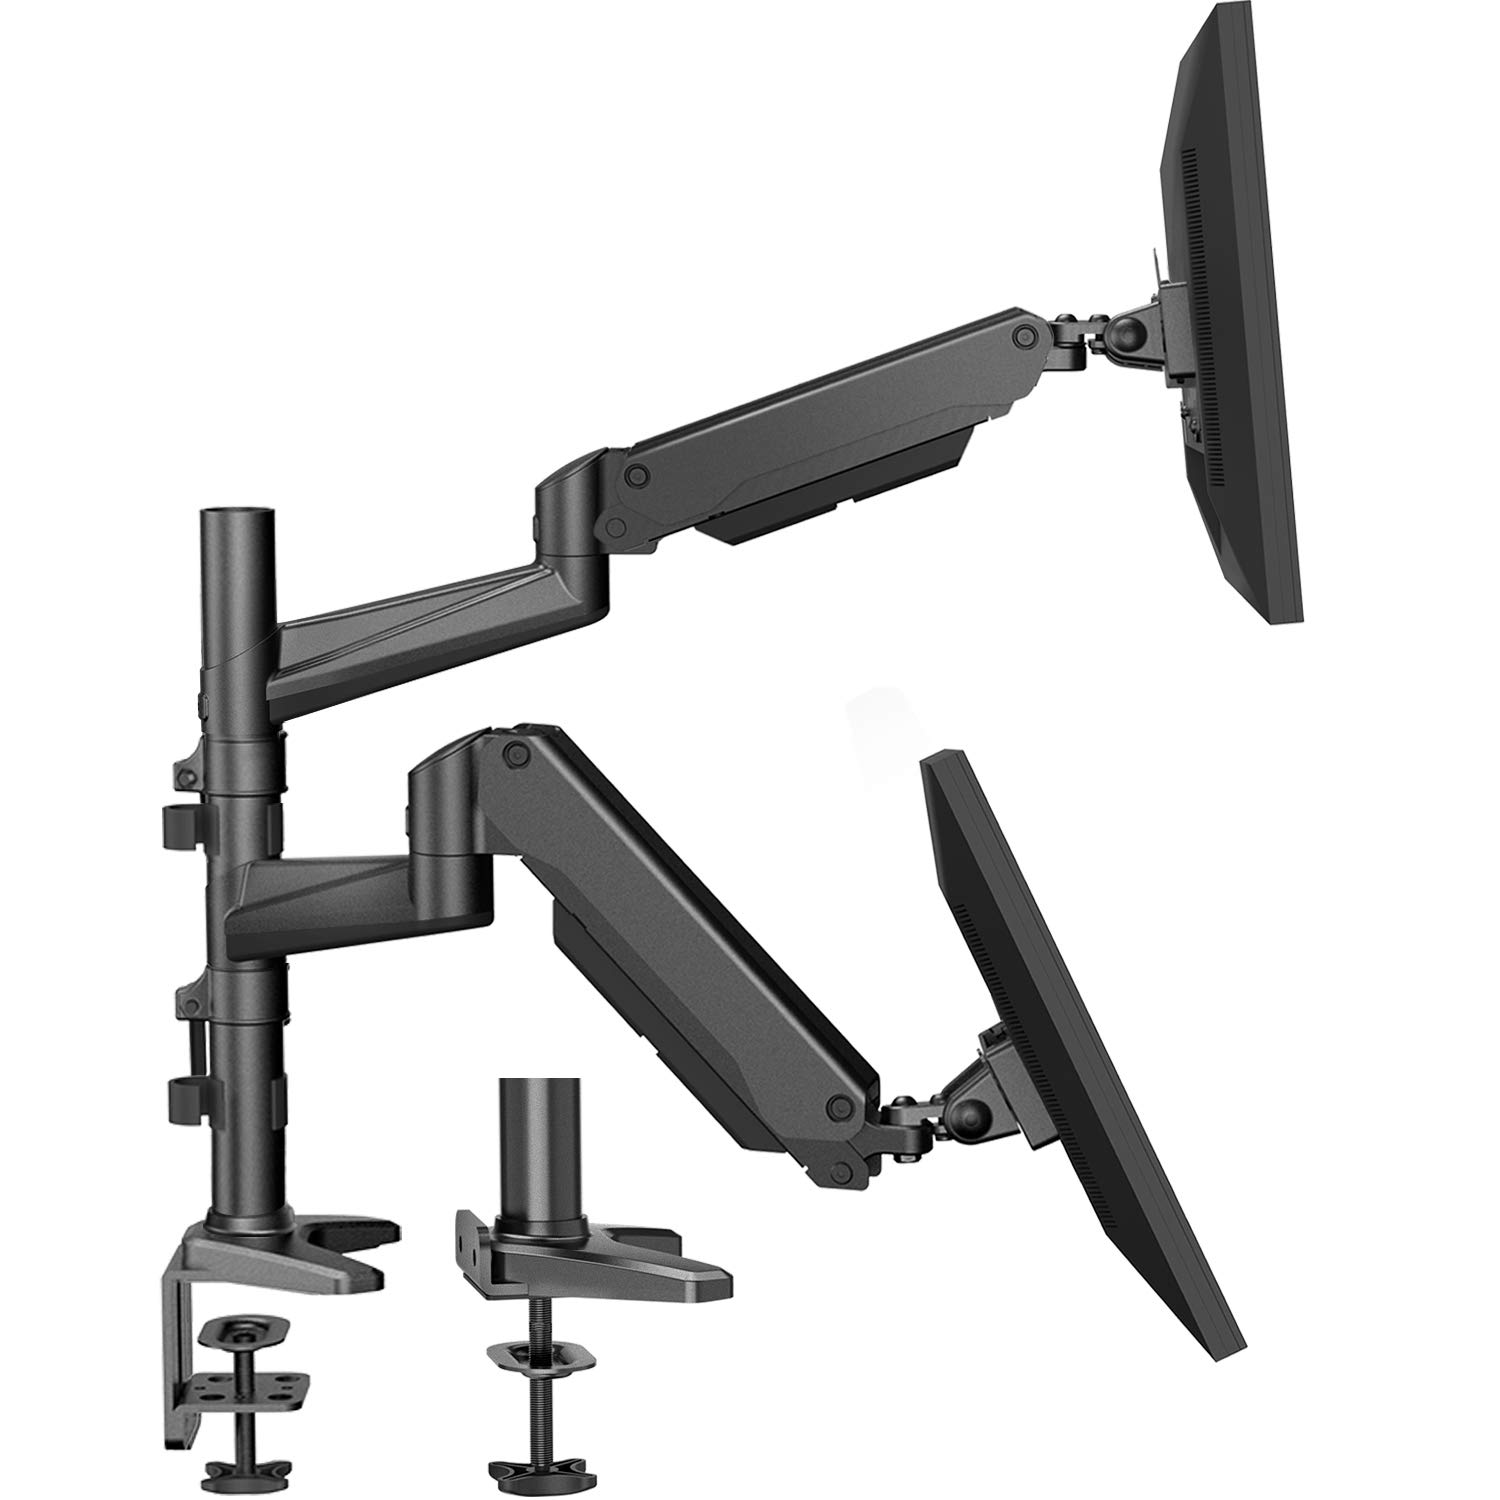 HUANUO Dual Monitor Mount Stand - Aluminum Gas Spring Arm Height Adjustable Monitor Desk Mount VESA Bracket for 2 17 to 32 Inch LCD Computer Screens with C Clamp, Grommet Base by HUANUO